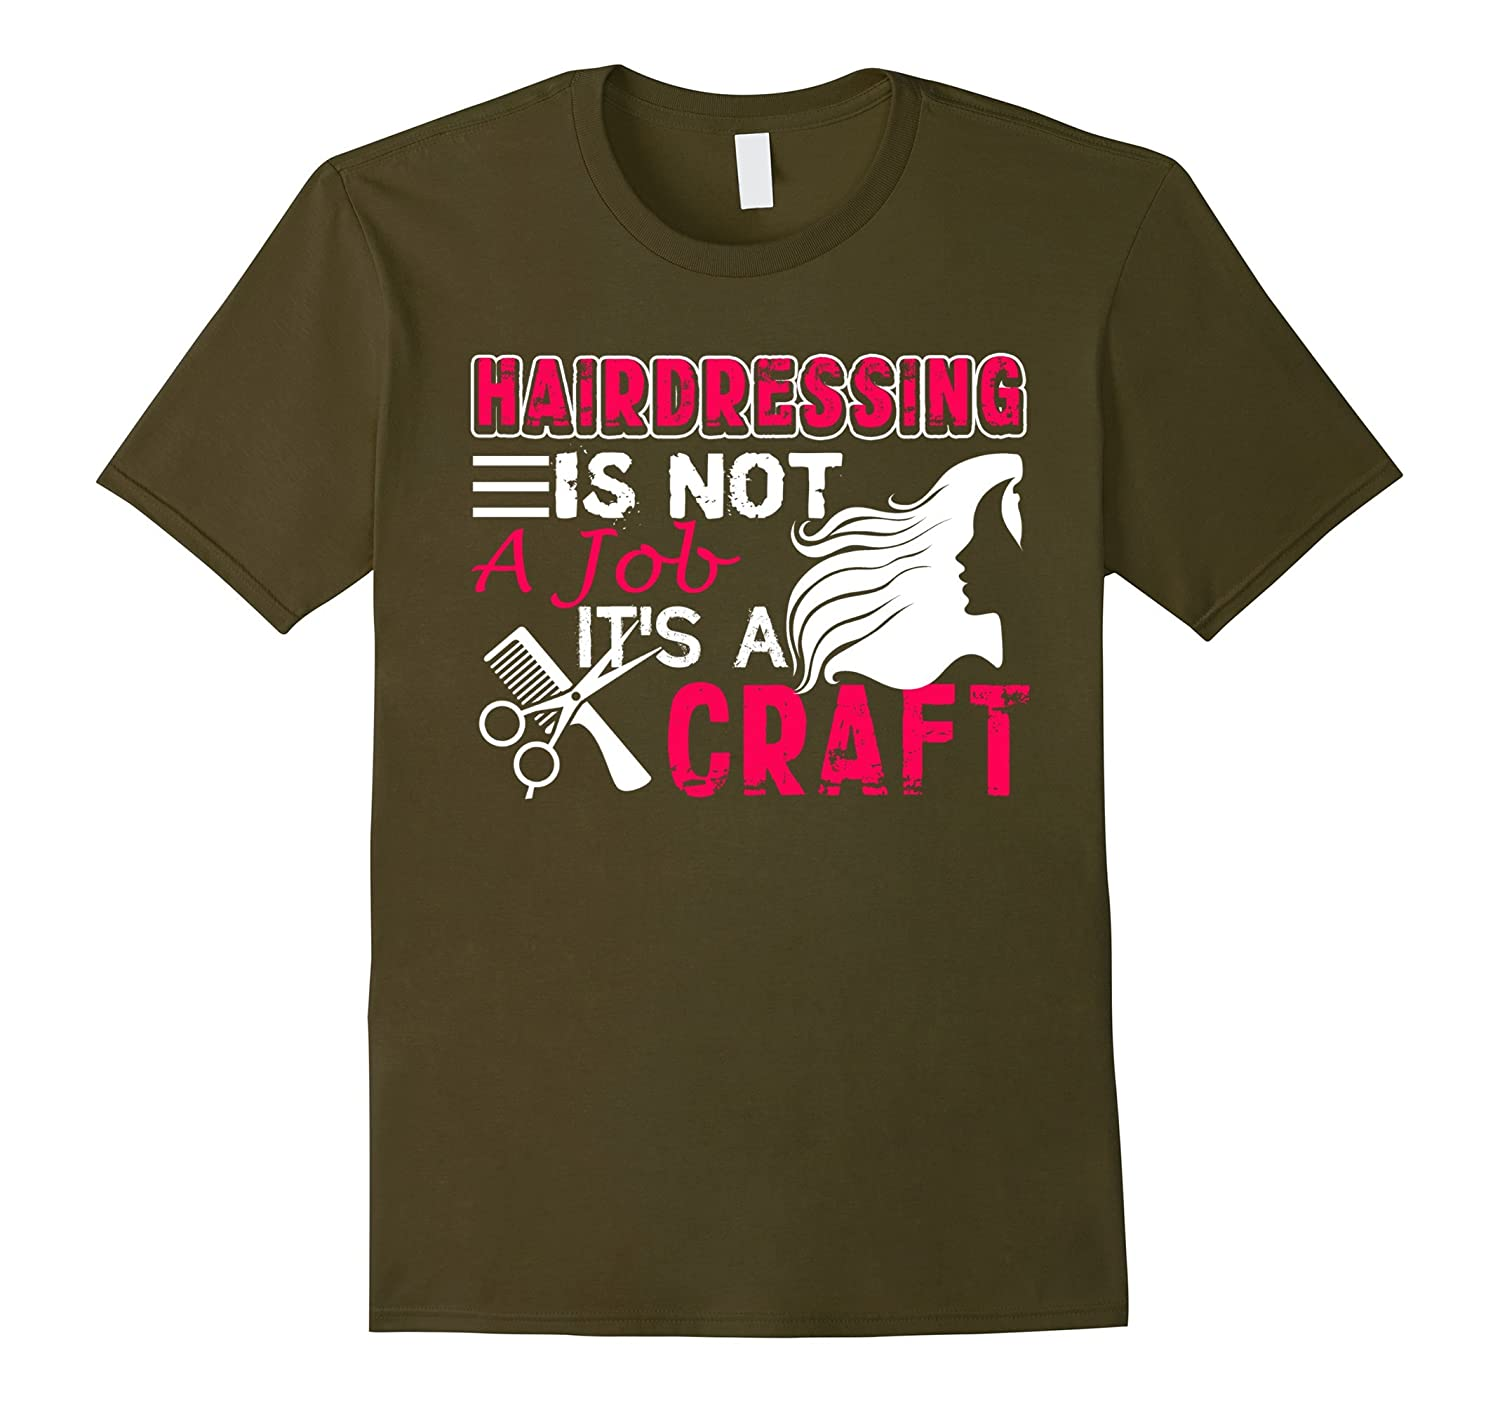 Hairdresser Shirts - Hairdressing Is A Craft Tshirt-TD